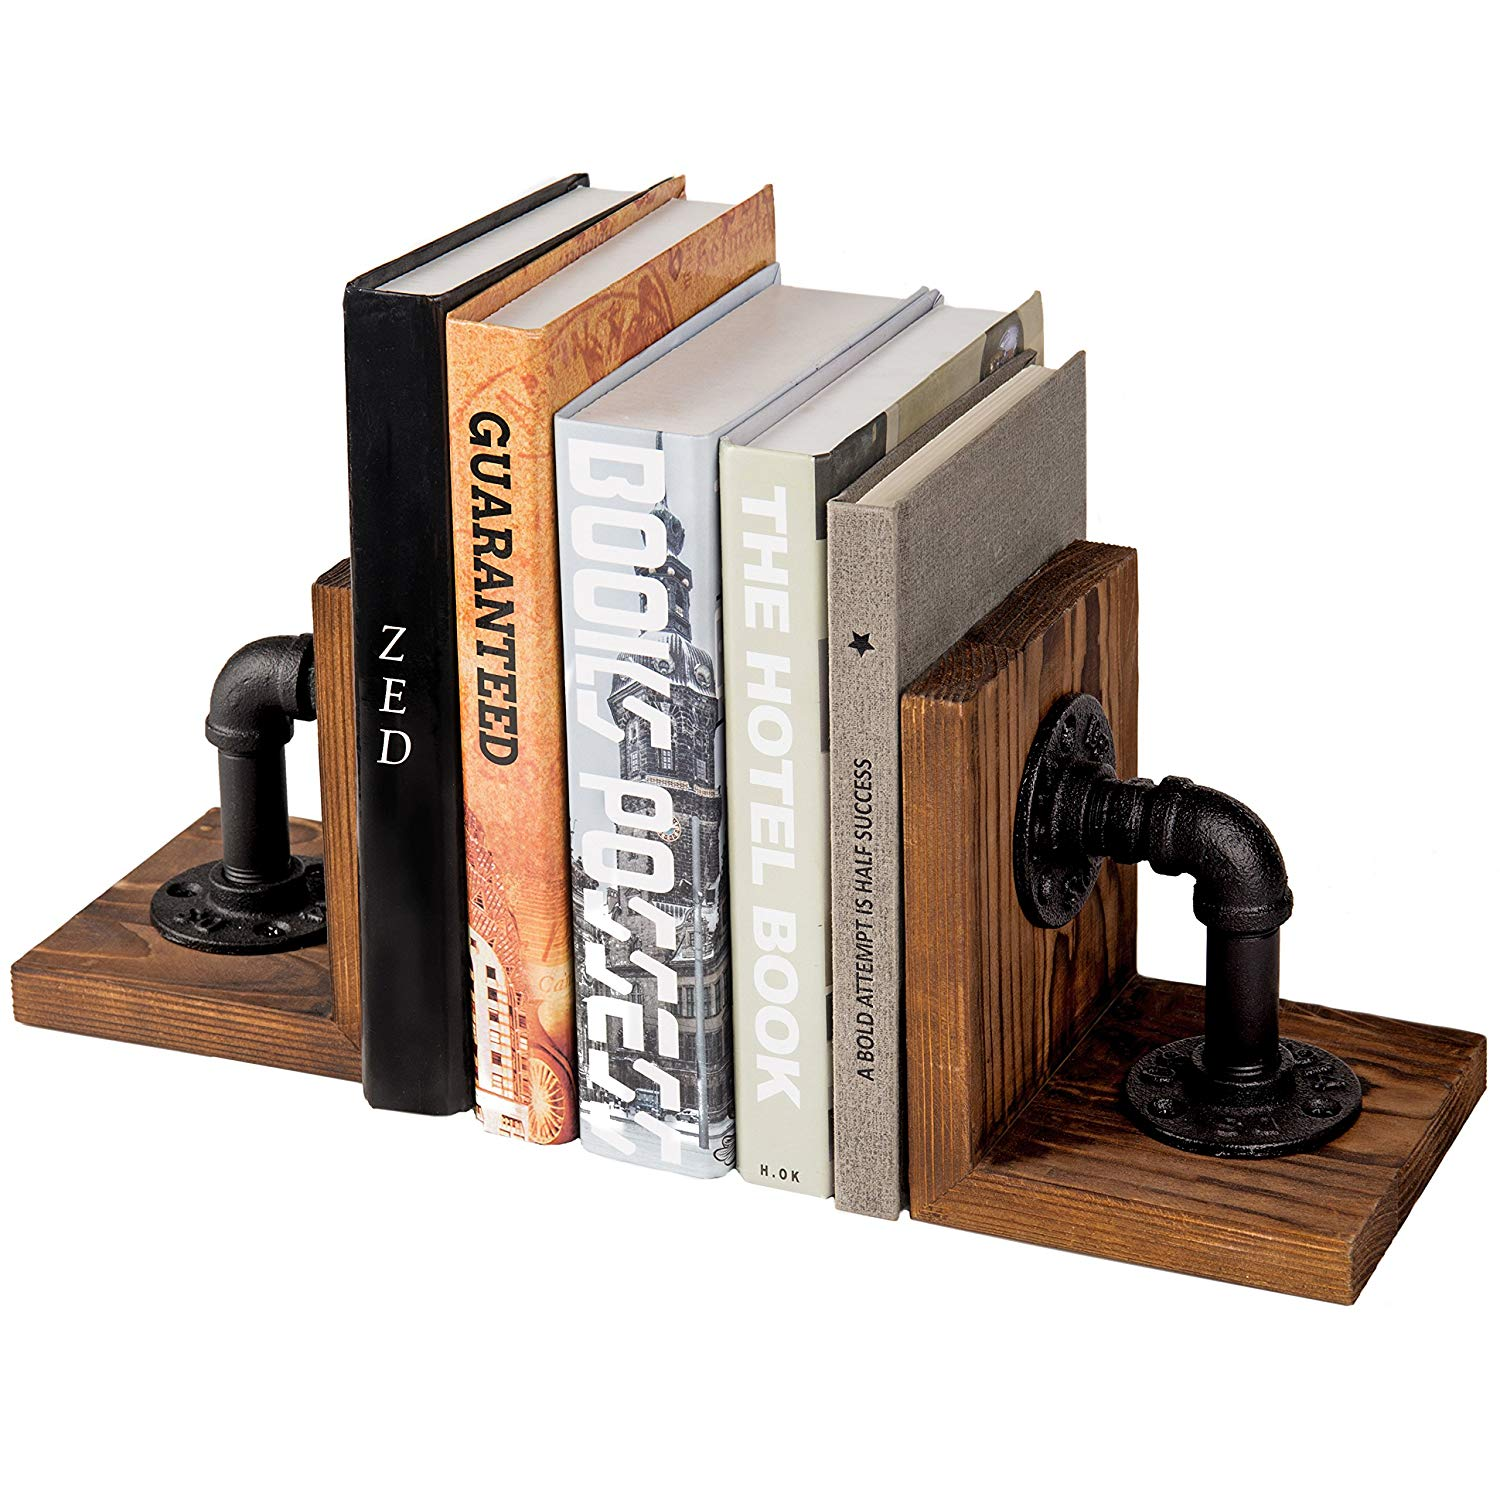 Industrial Style Pipe and Rustic Wood Tabletop Bookends, Set of 2